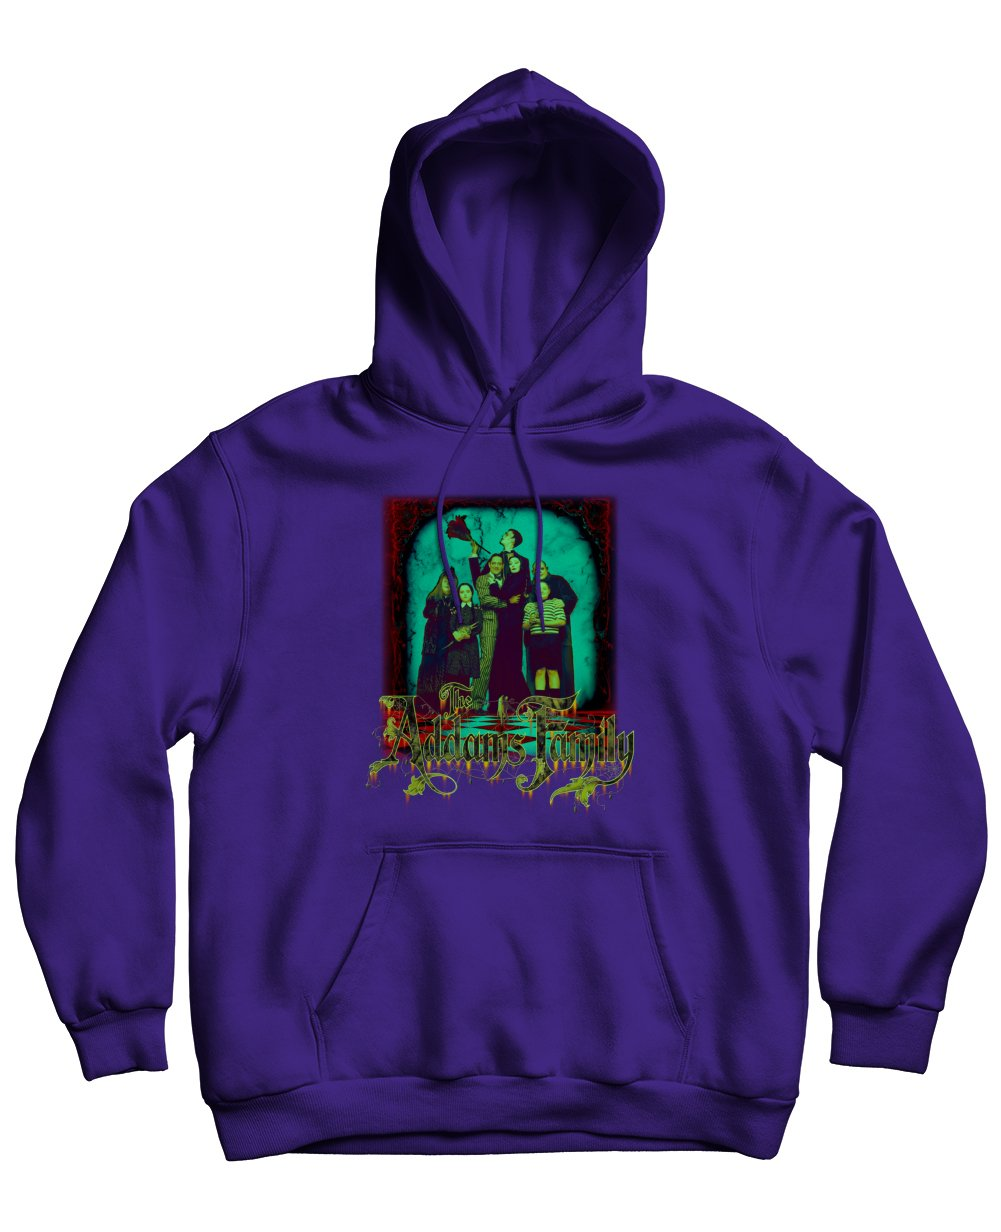 The Addams Family Print Hoodies in Purple